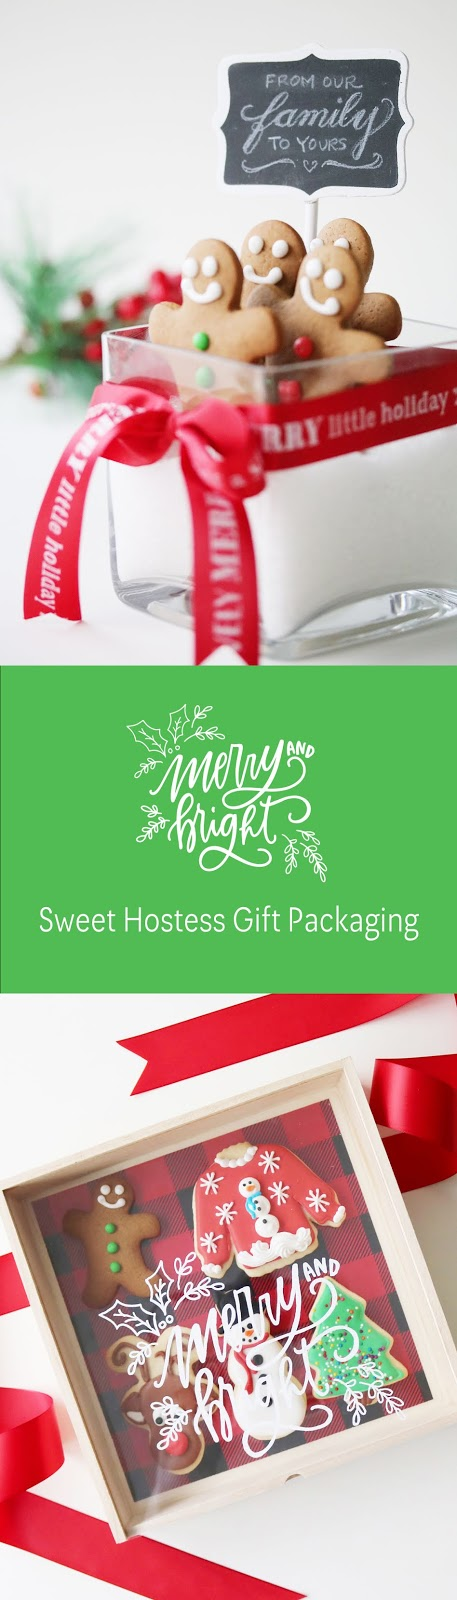 Sweet hostess gift wrapping inspiration | Creative Bag and Bake Sale Toronto